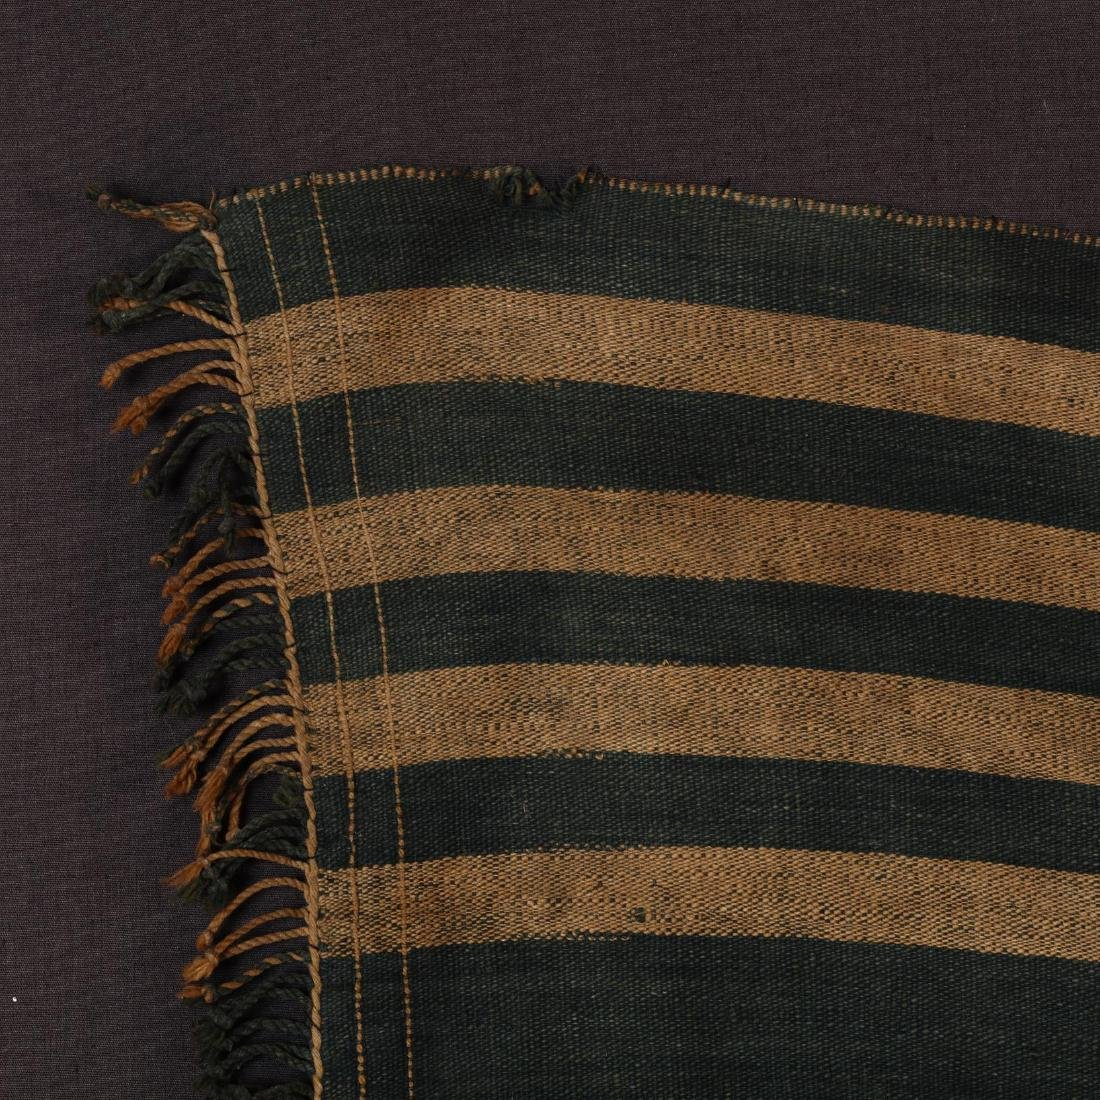 Naga Tribal Blanket with Cowrie Shells - 3